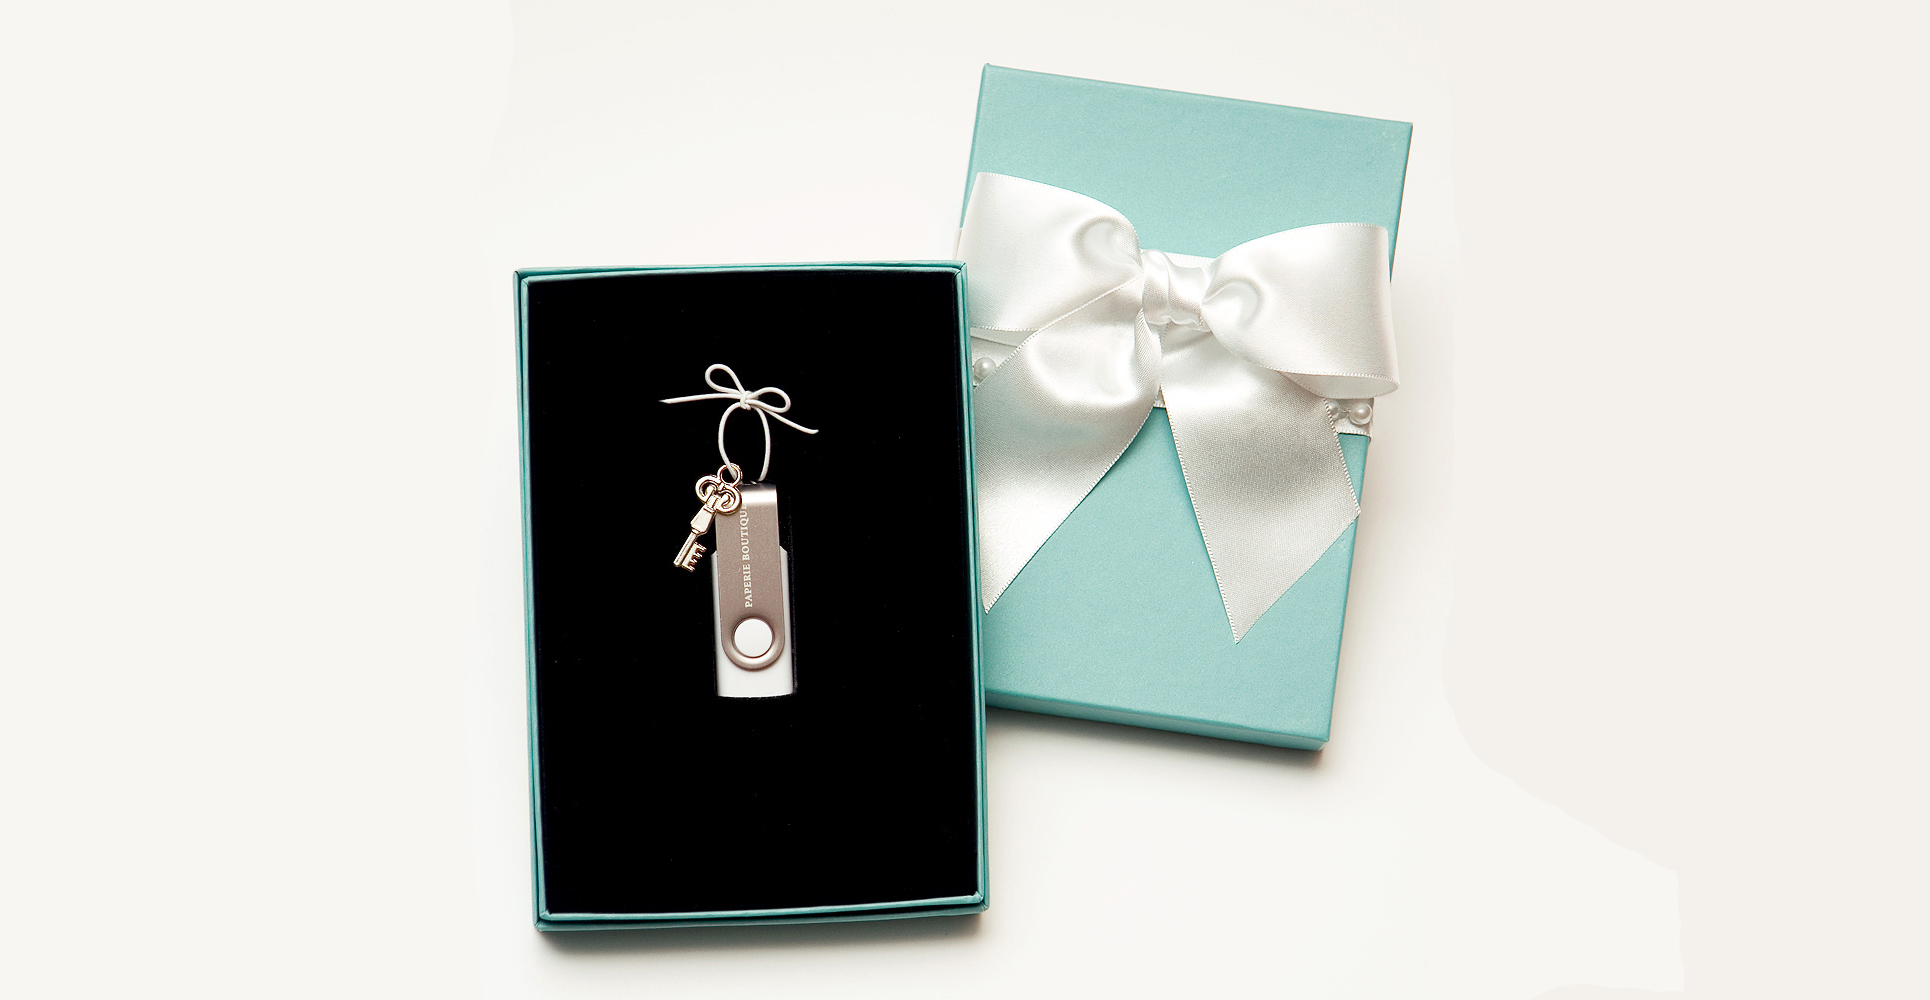 usb-drive-paperie-boutique-example-5.jpg